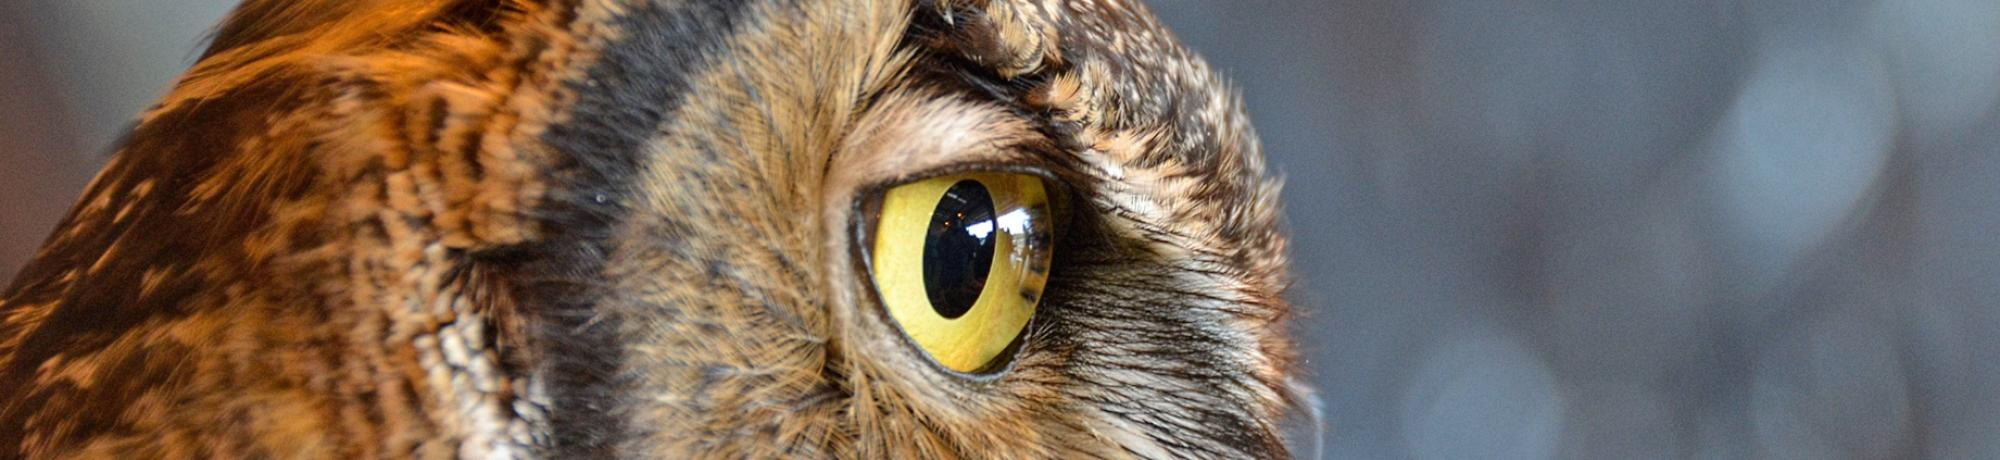 Forrest the Great Horned Owl